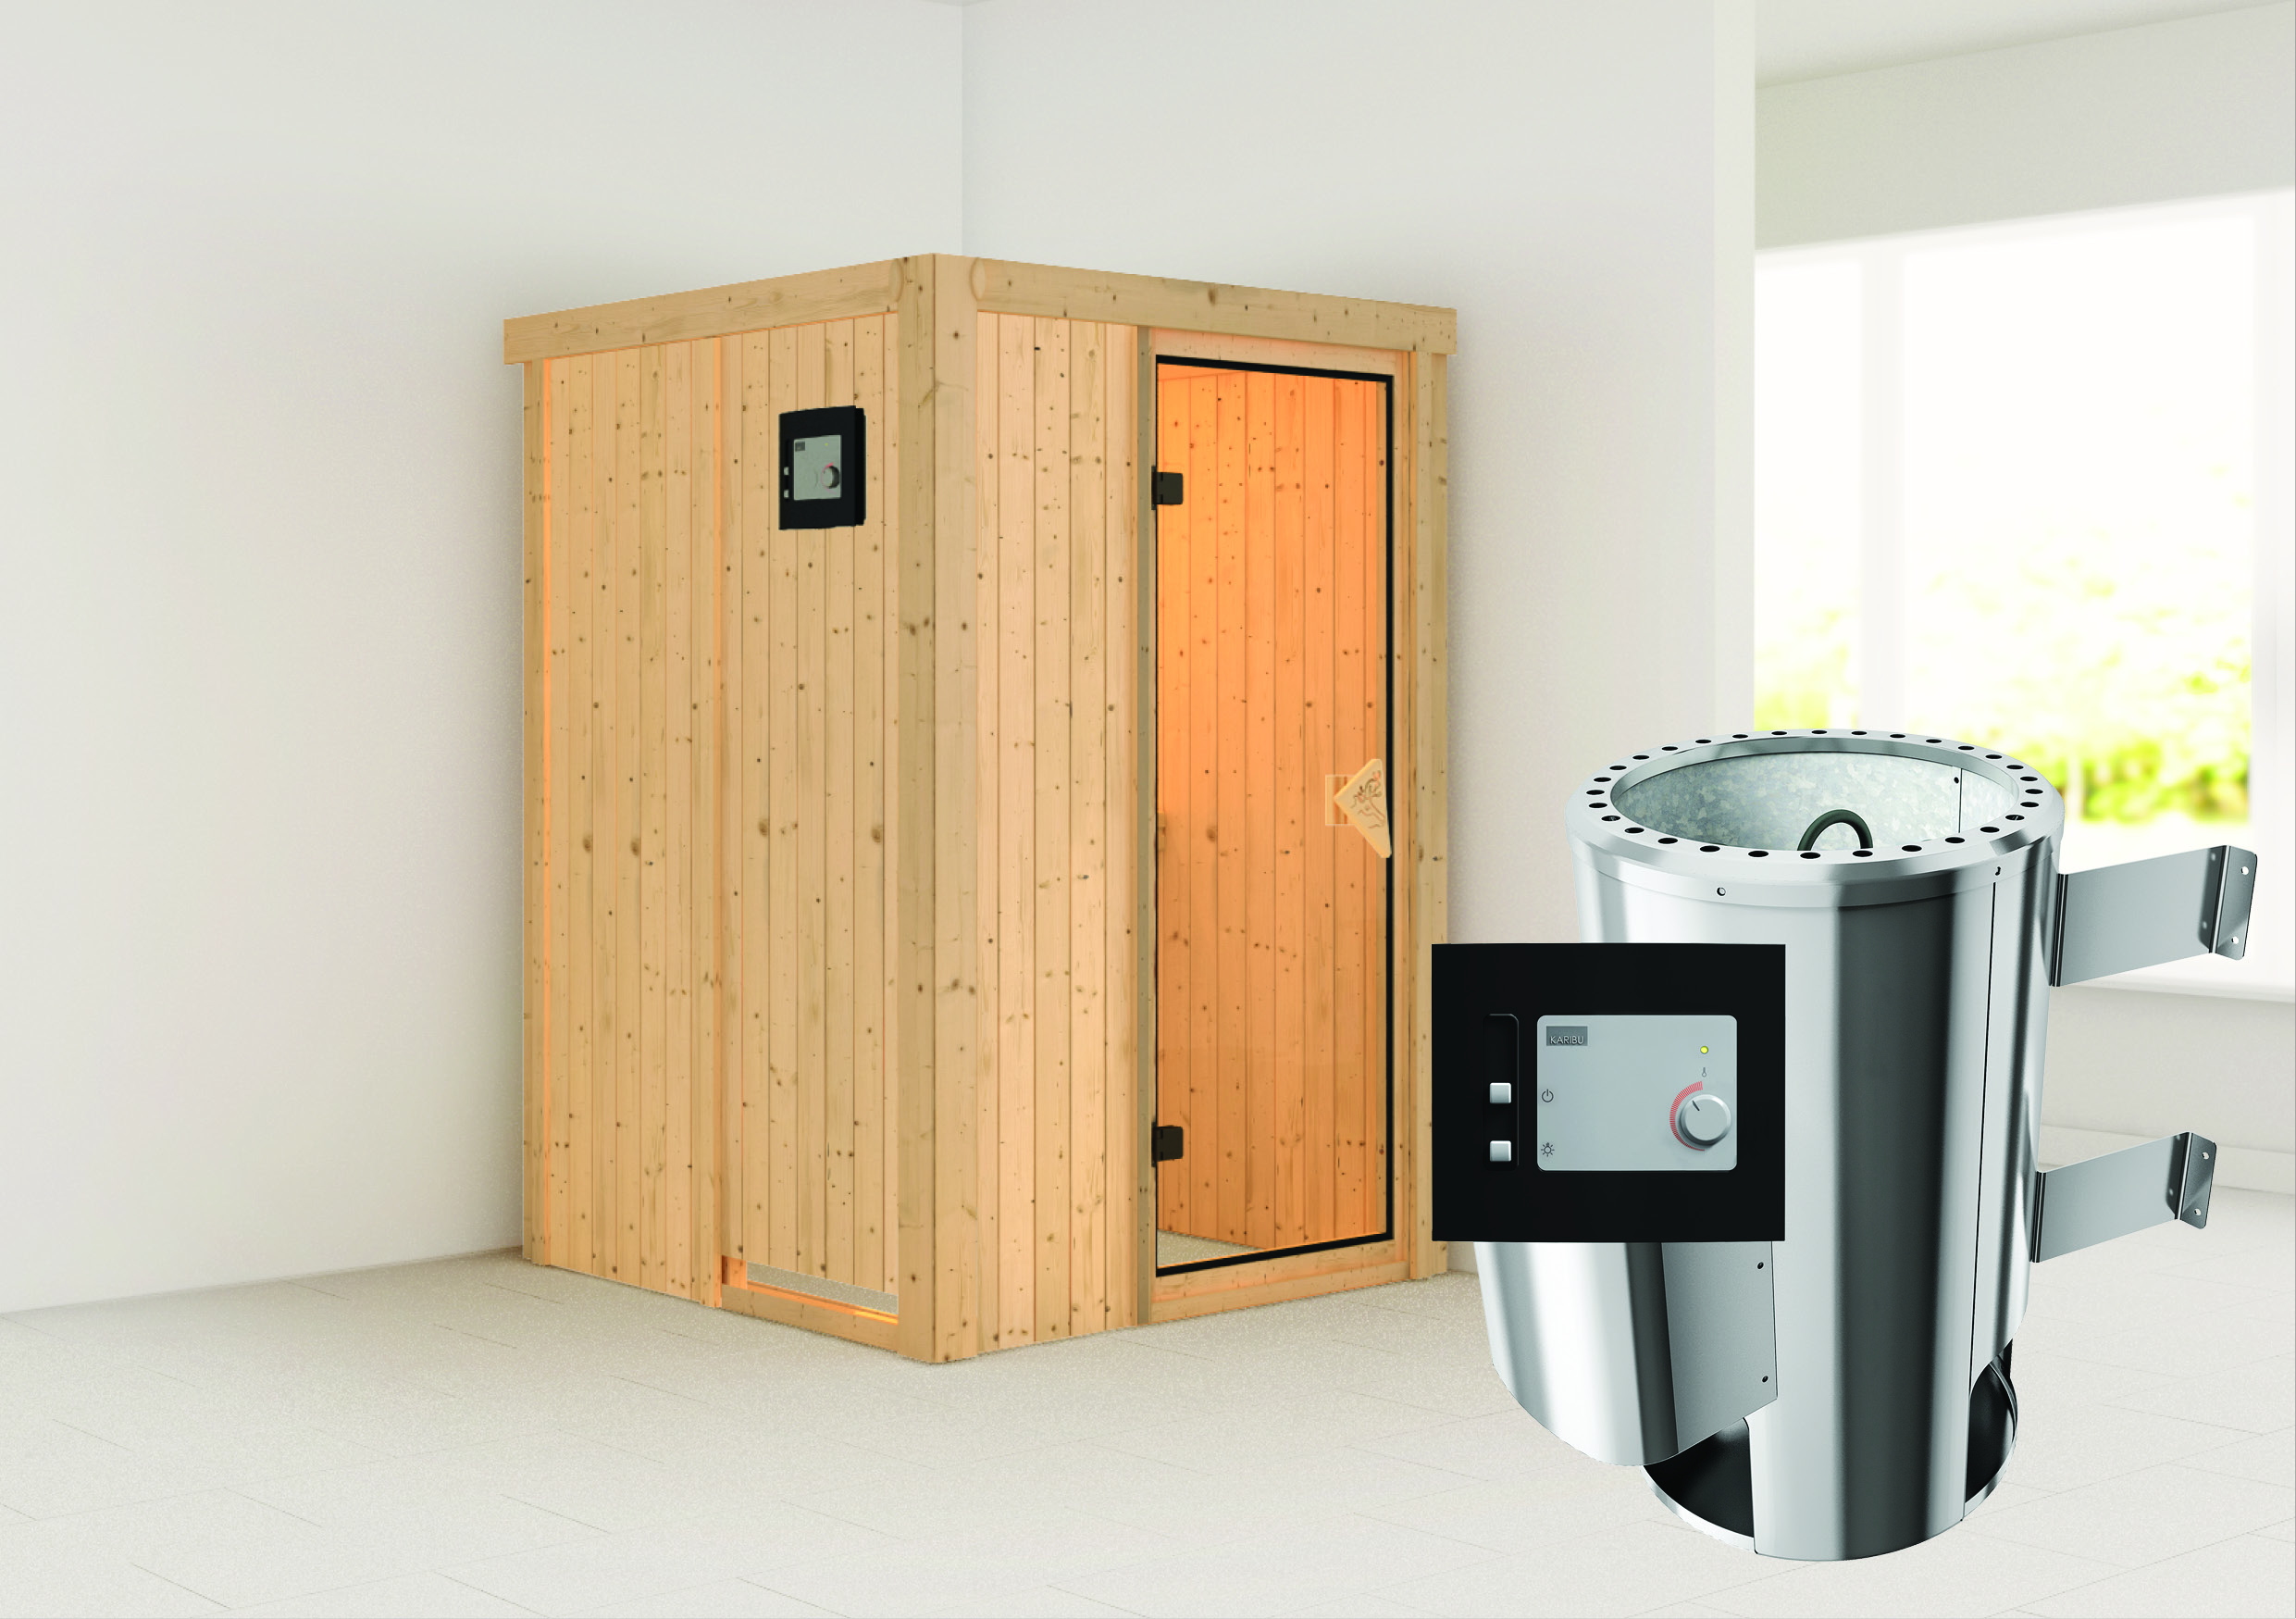 karibu sauna 230 volt lenja 1 35 x 1 35 m 68 mm mit 3 6 kw ofen energiesparsauna ebay. Black Bedroom Furniture Sets. Home Design Ideas